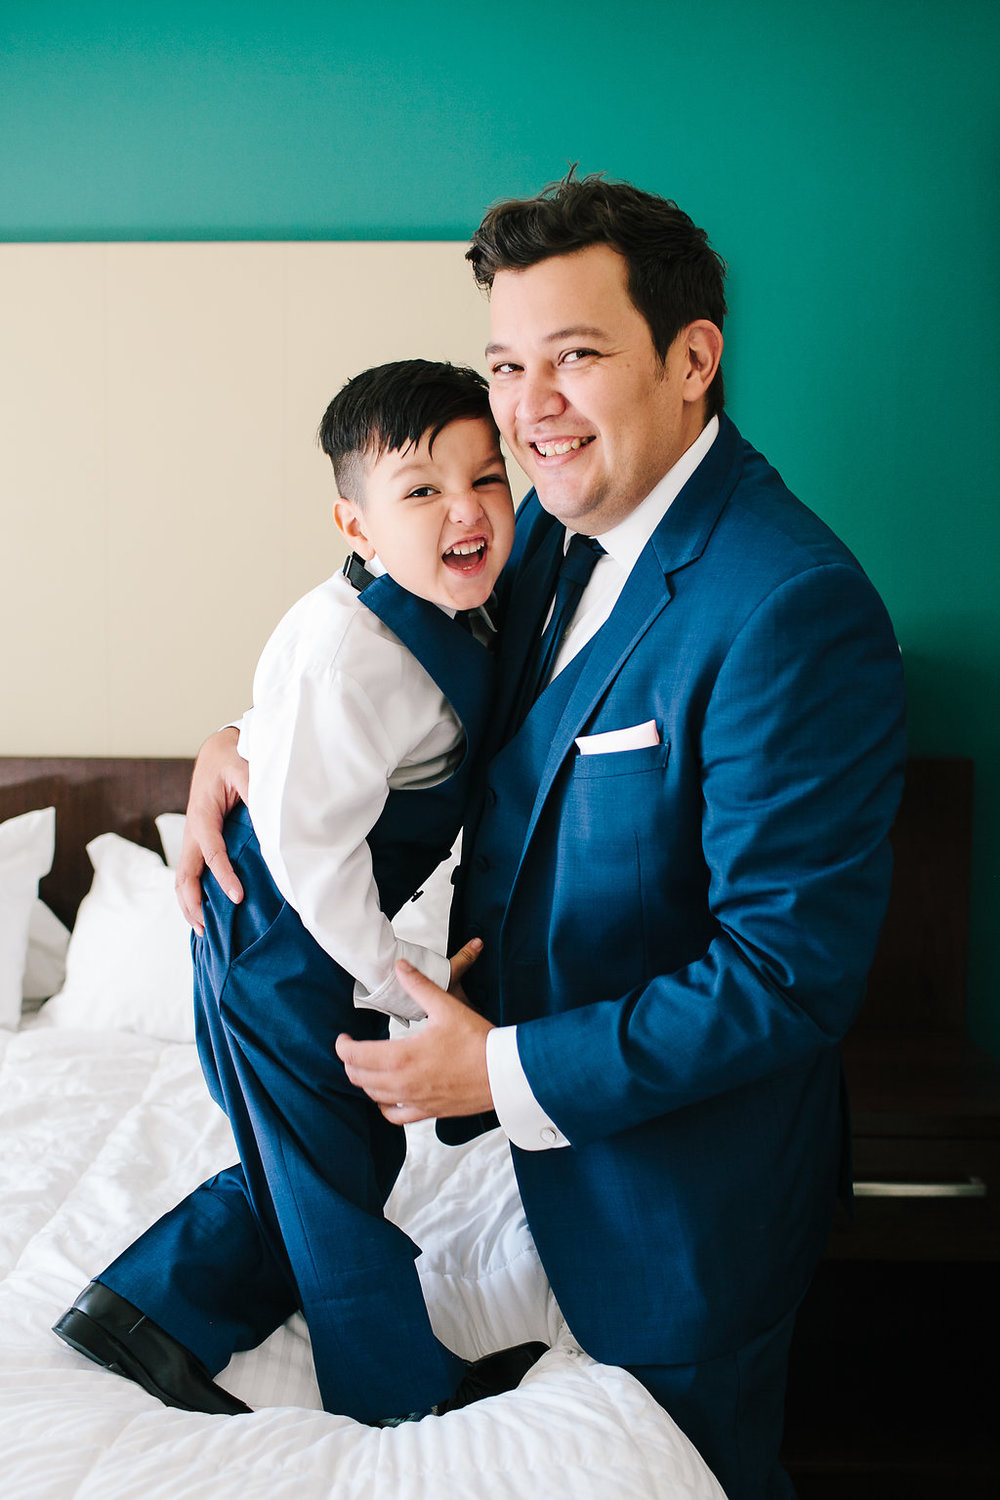 Meanwhile, Joshua got ready with our little man! Suits by Friar Tux